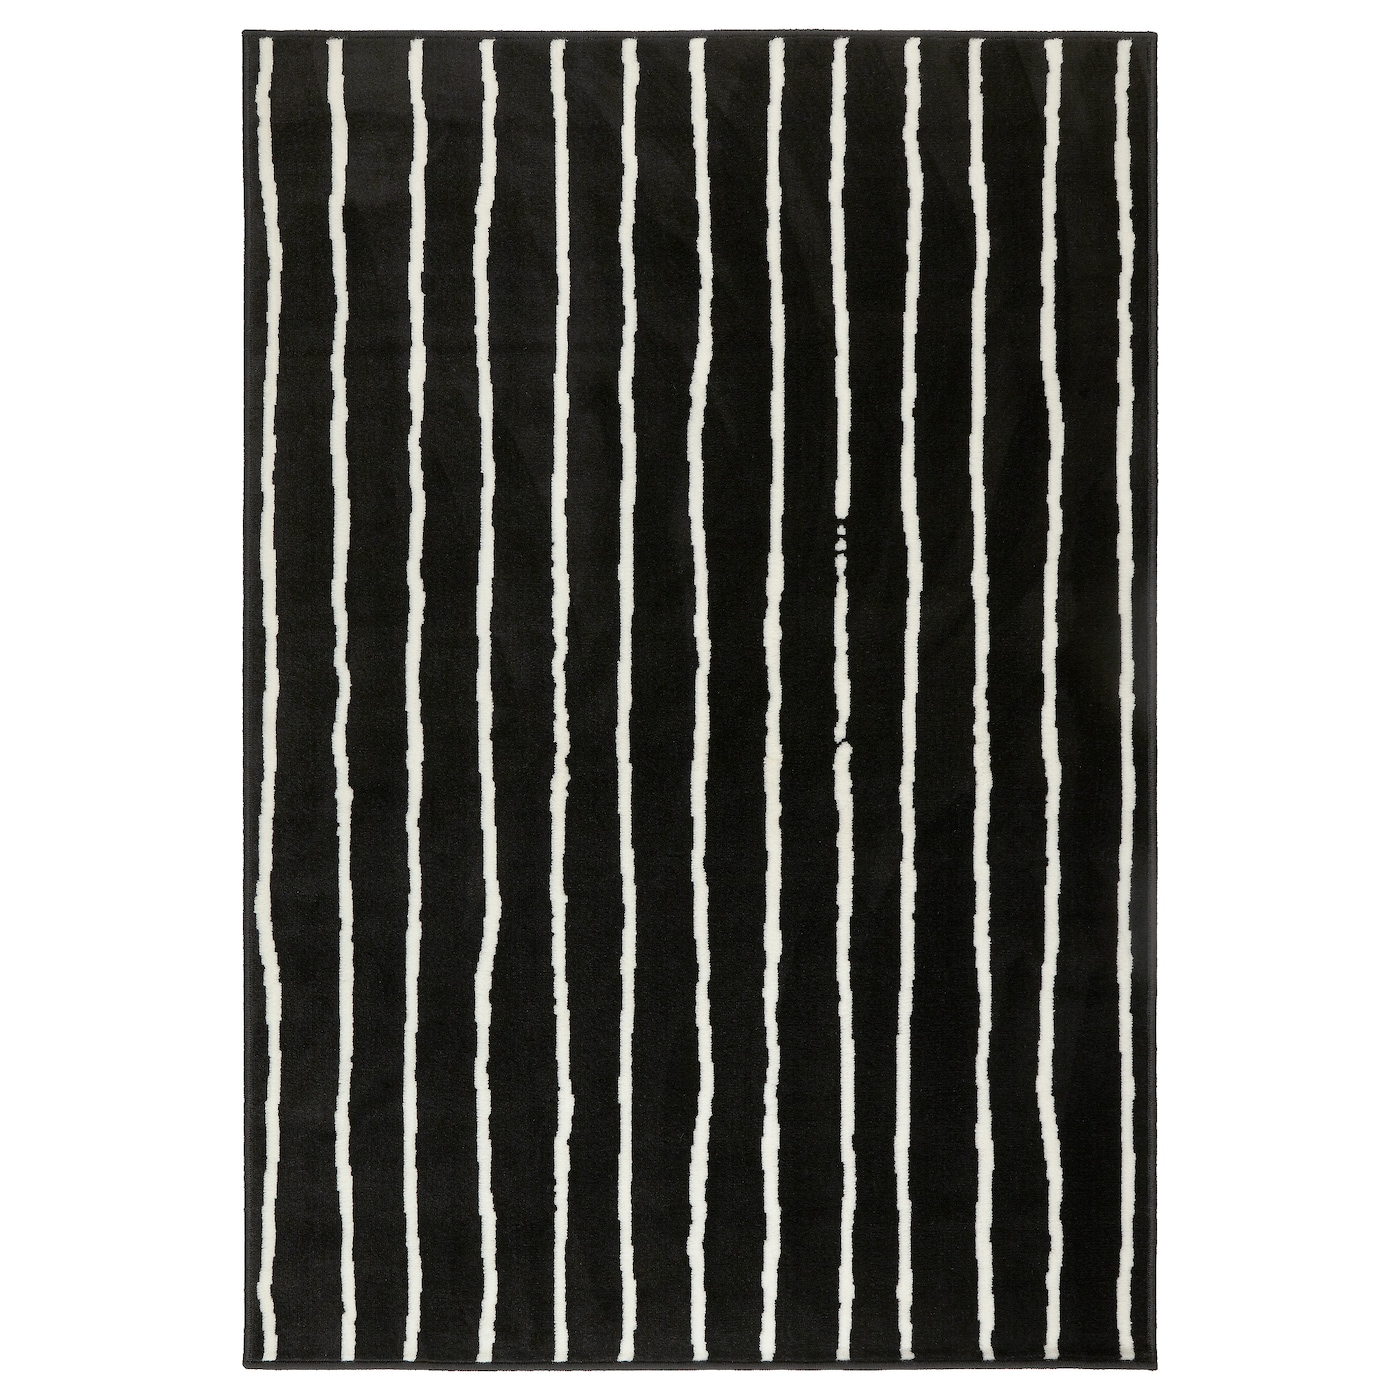 rag cotton rugs rug home uk ikea decorating ideas